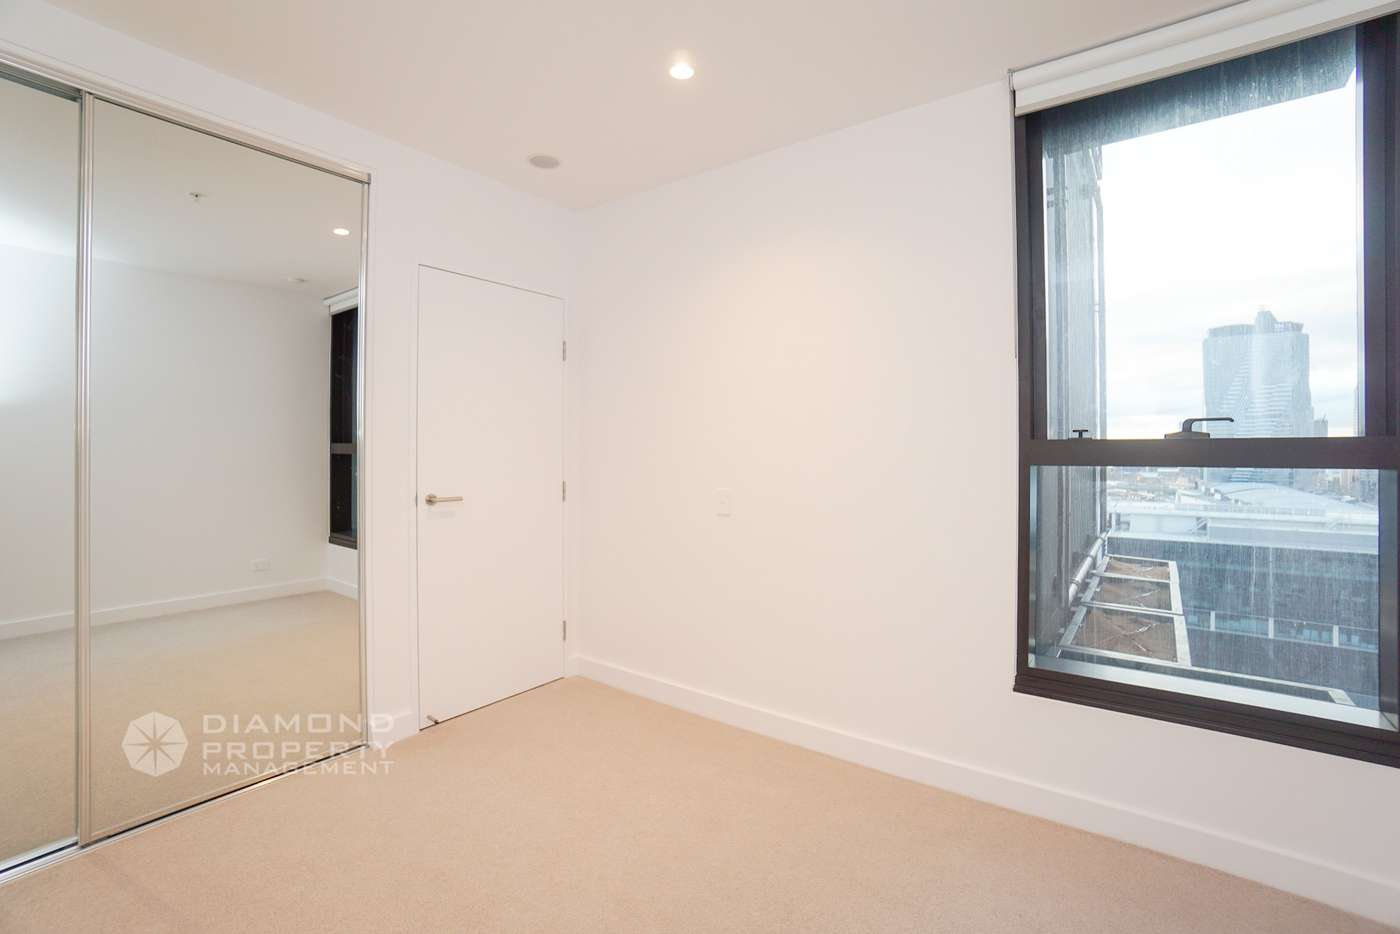 Fifth view of Homely apartment listing, 1616/628 Flinders Street, Docklands VIC 3008